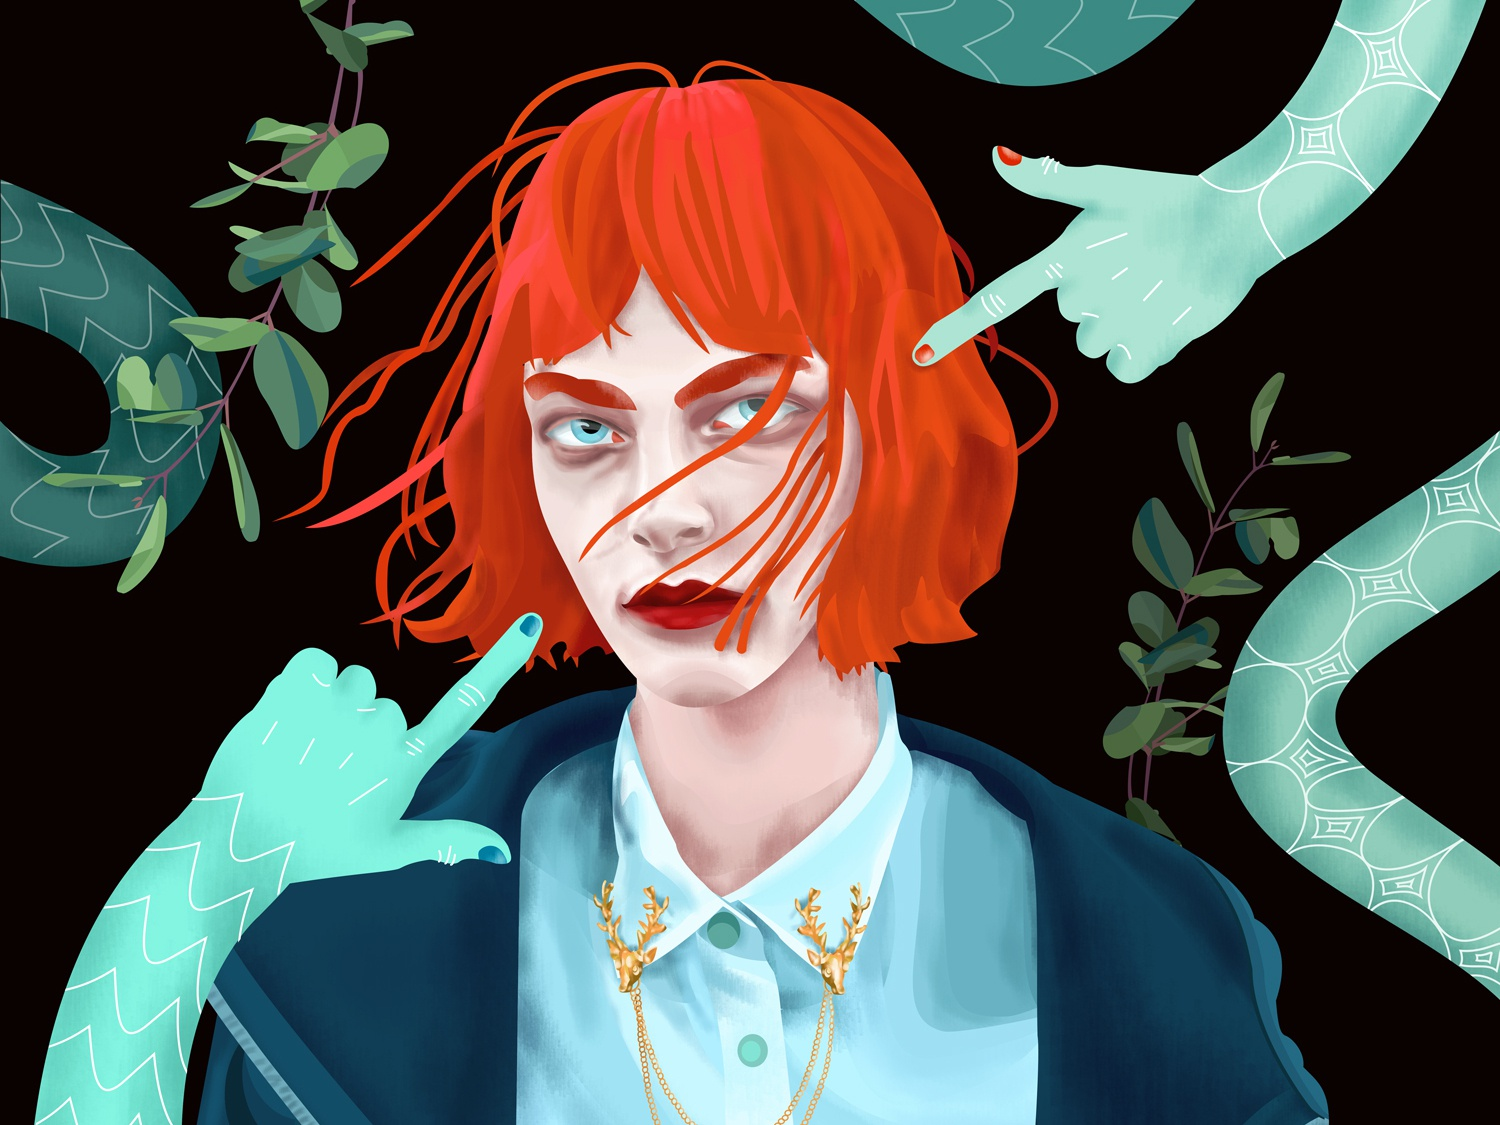 Snakes for hands guilty magic fashion geek fantastical wind life hair red pointing scales leaves anxiety hands snakes styled girl face portrait illustration